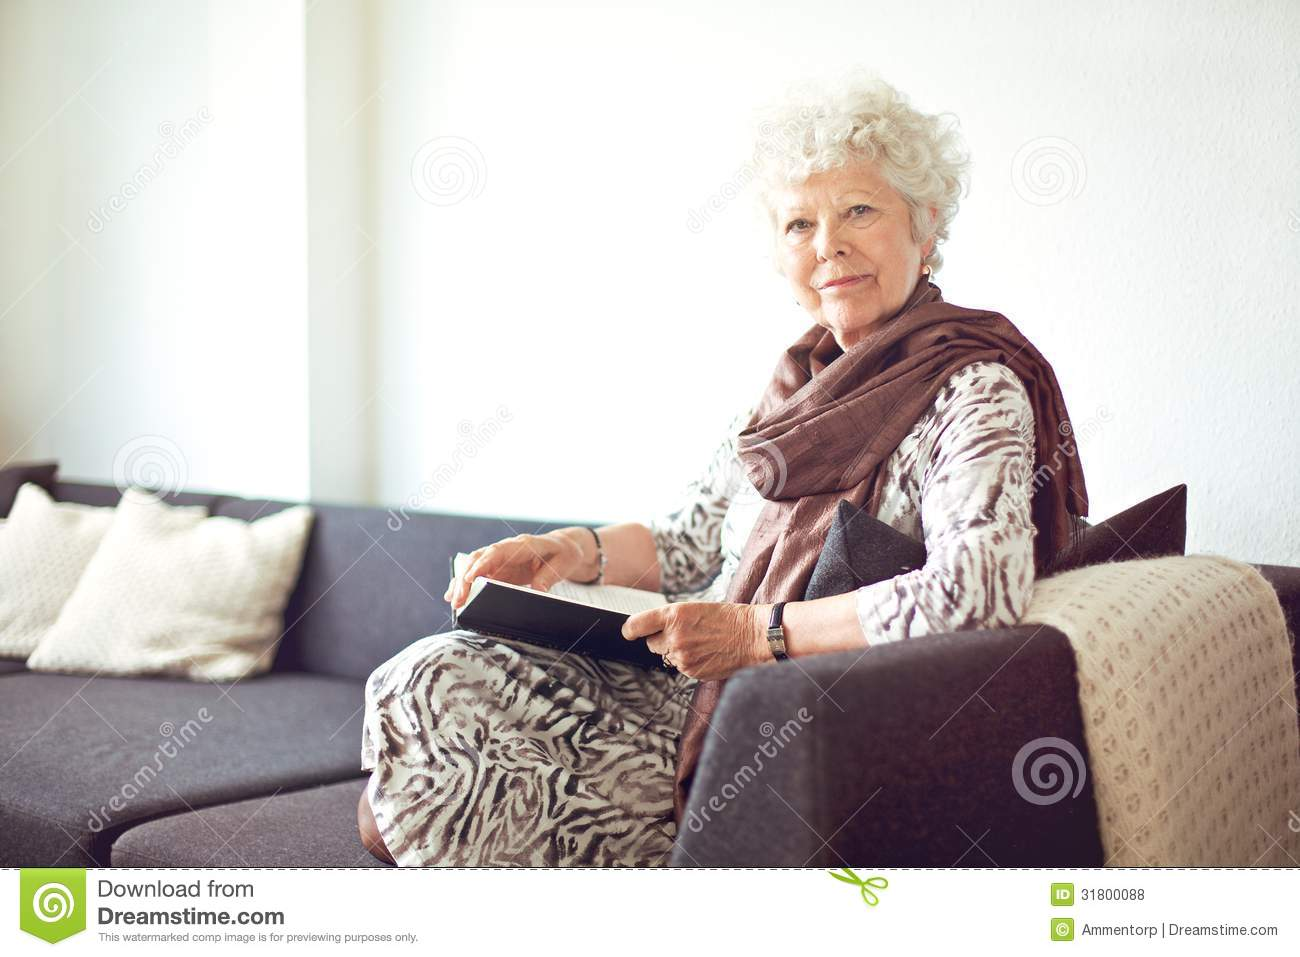 Grandmother At Home Sitting On The Couch Stock Photo  : grandmother home sitting couch relaxed 31800088 from www.dreamstime.com size 1300 x 957 jpeg 103kB